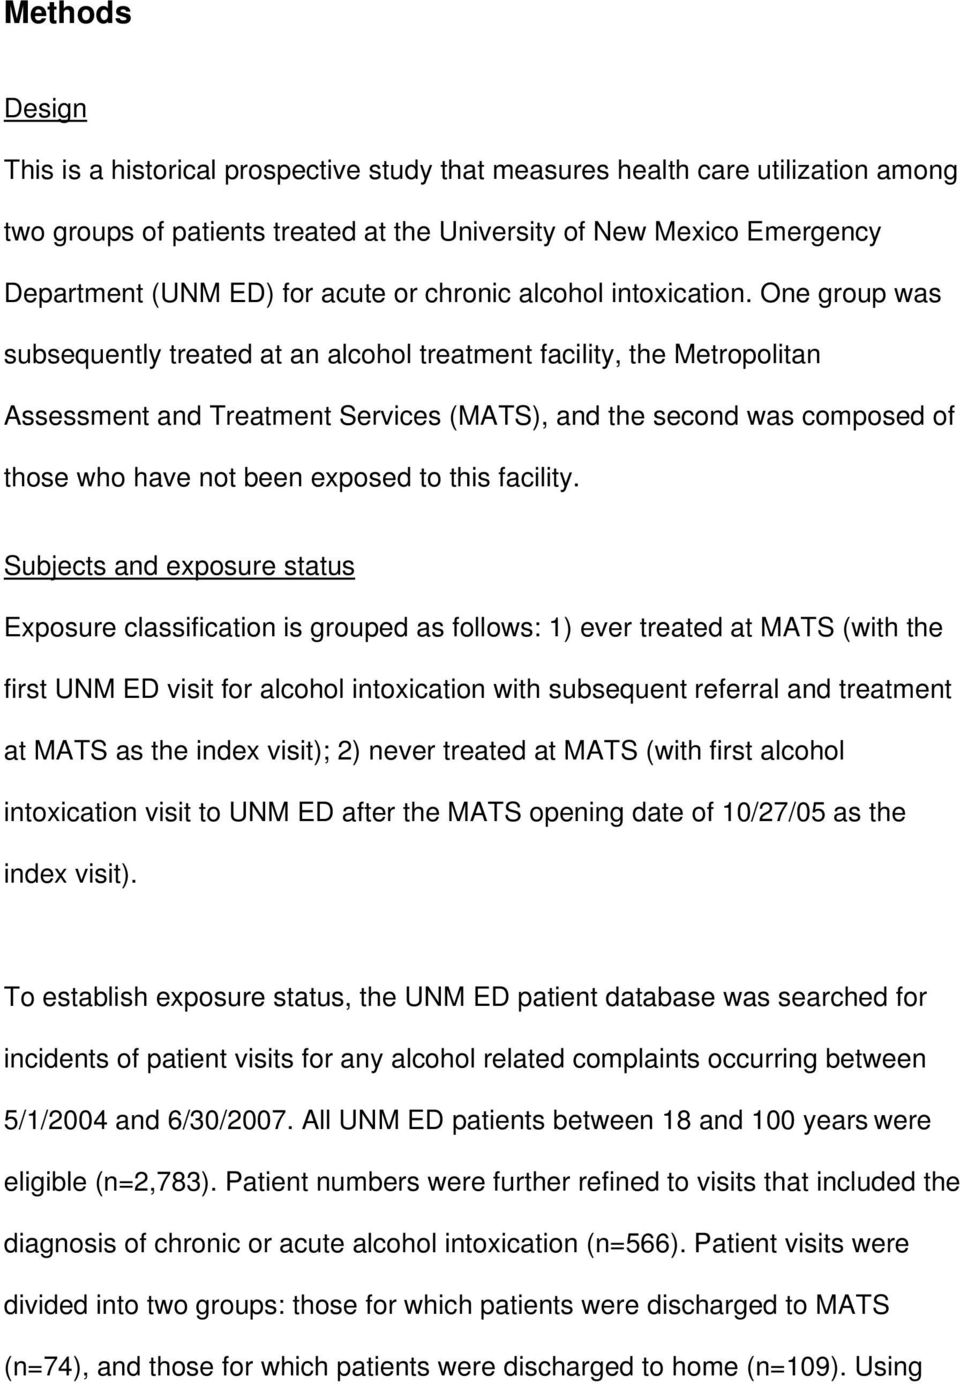 One group was subsequently treated at an alcohol treatment facility, the Metropolitan Assessment and Treatment Services (MATS), and the second was composed of those who have not been exposed to this